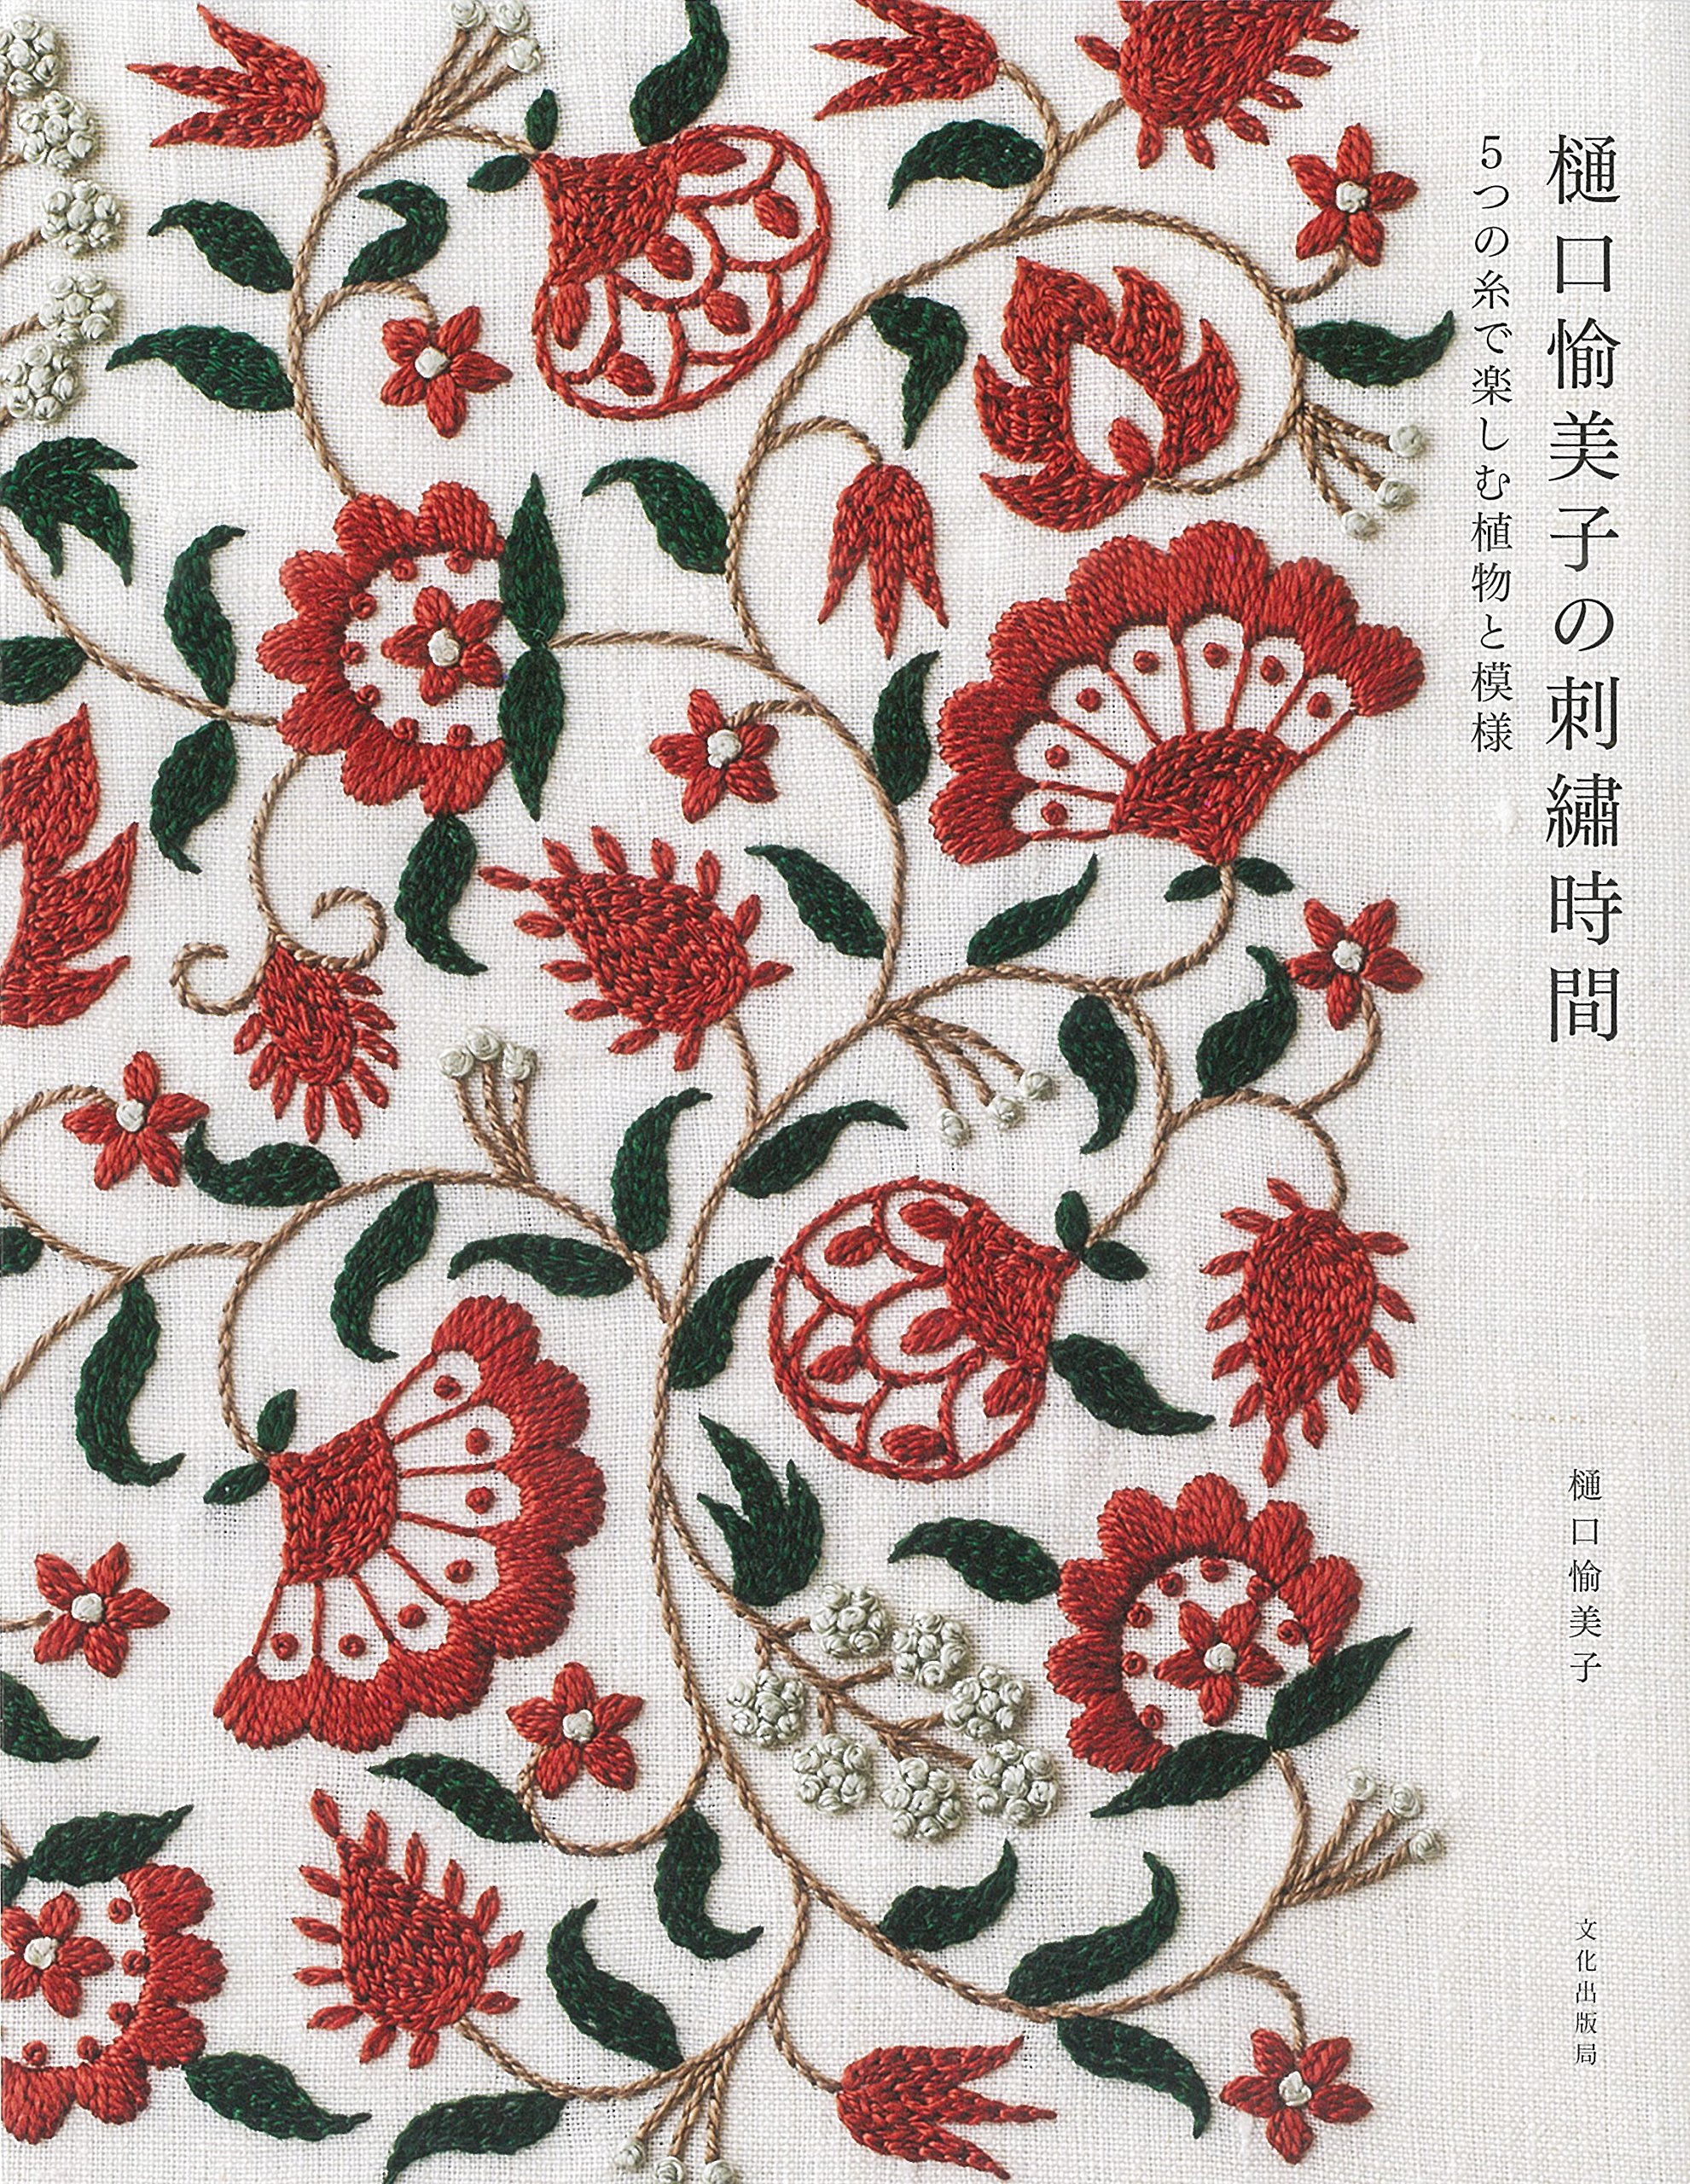 Plants and seemed to enjoy in the embroidery time five of yarn of Himaguchi Amiko